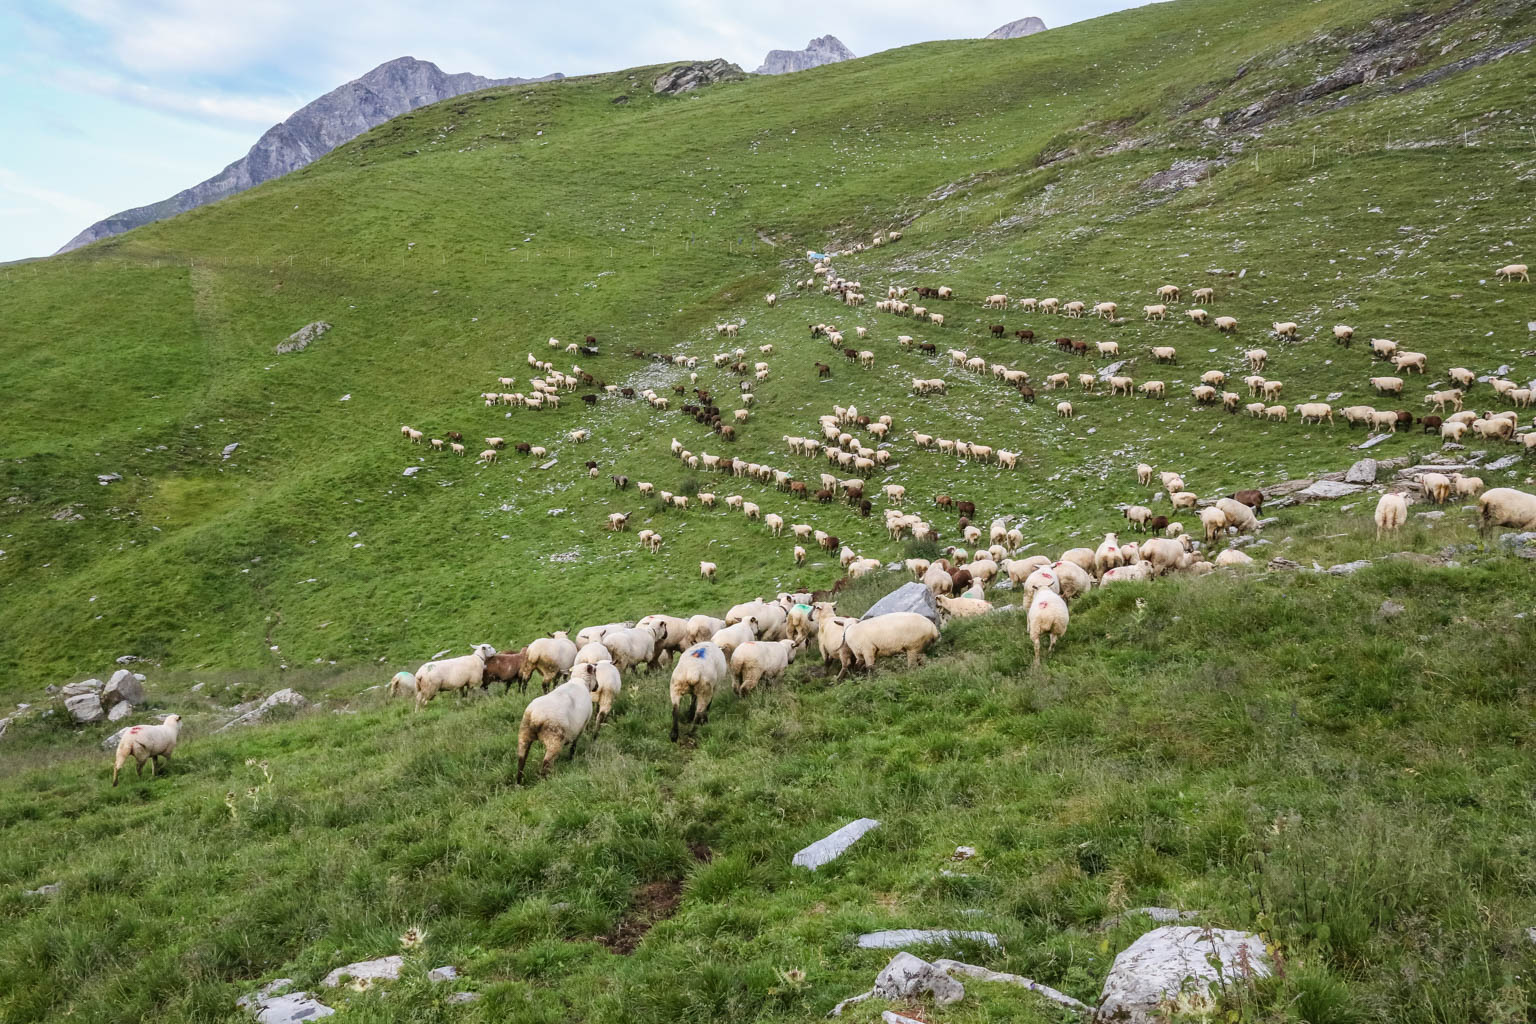 Sheepherding Switzerland